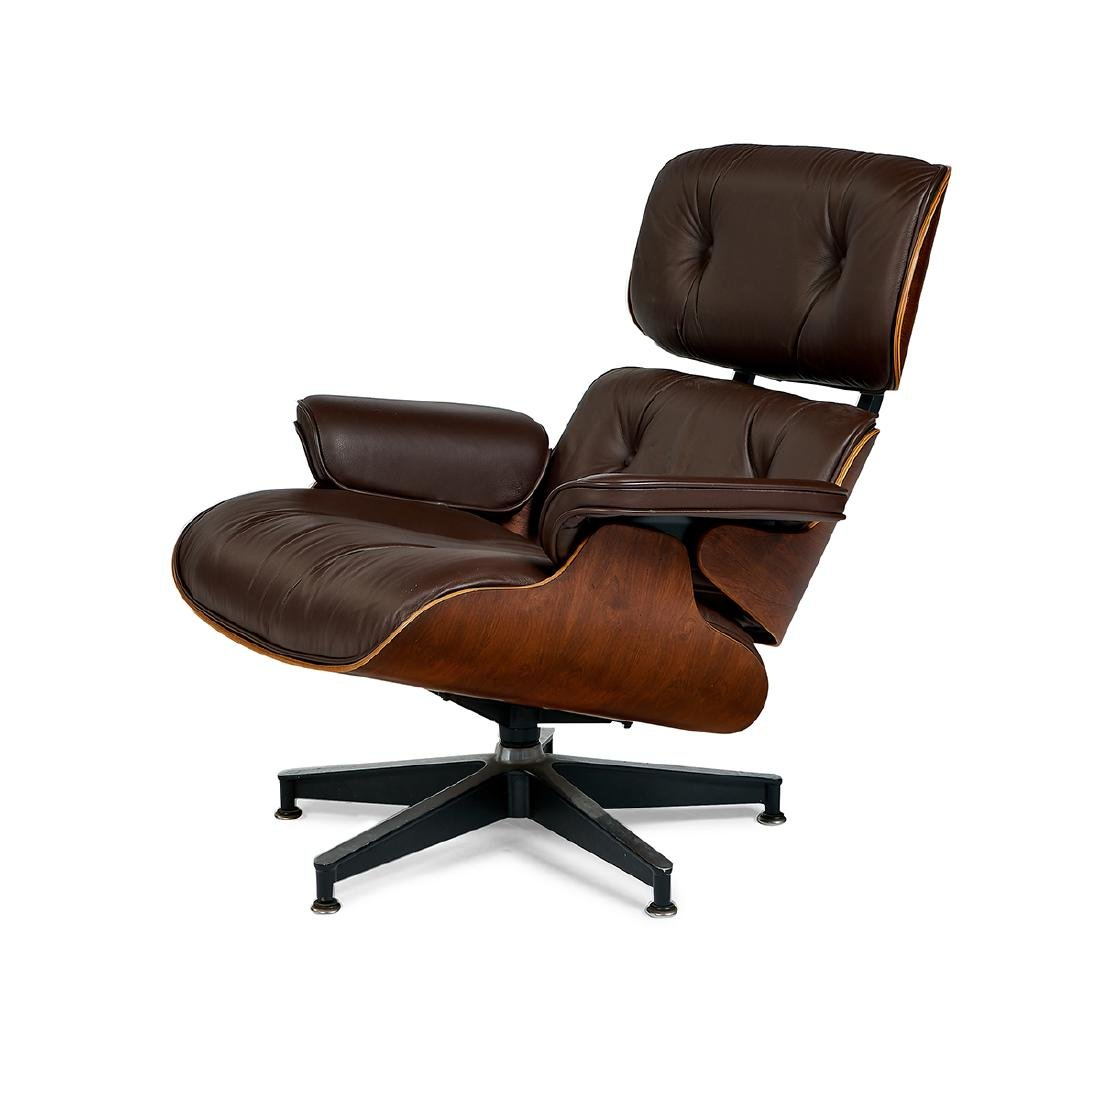 Charles & Ray Eames Herman Miller 670 chair